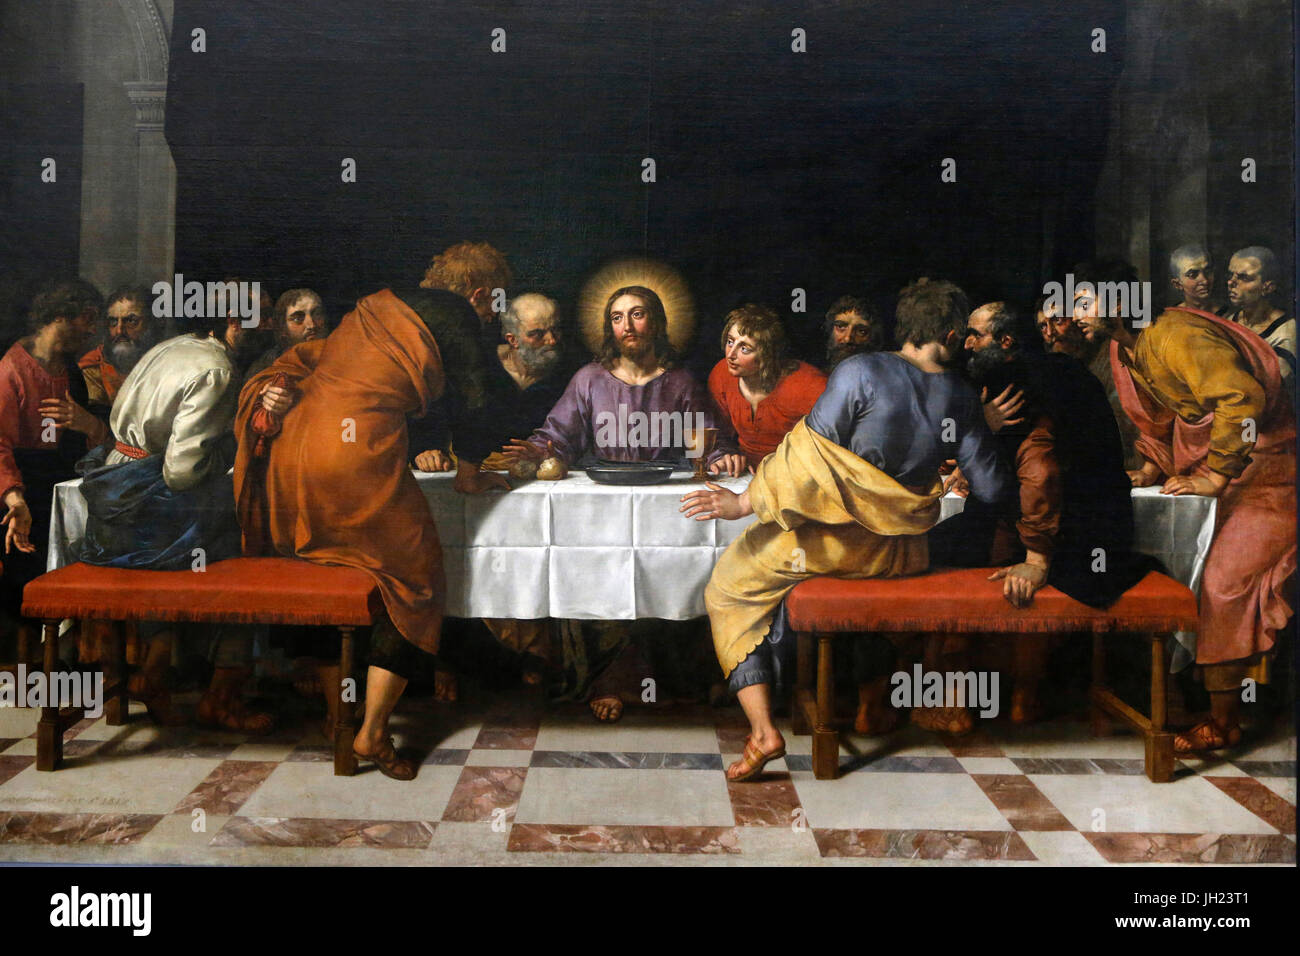 Louvre museum. Frans II Pourbus, The Last Supper. 1618. - Stock Image